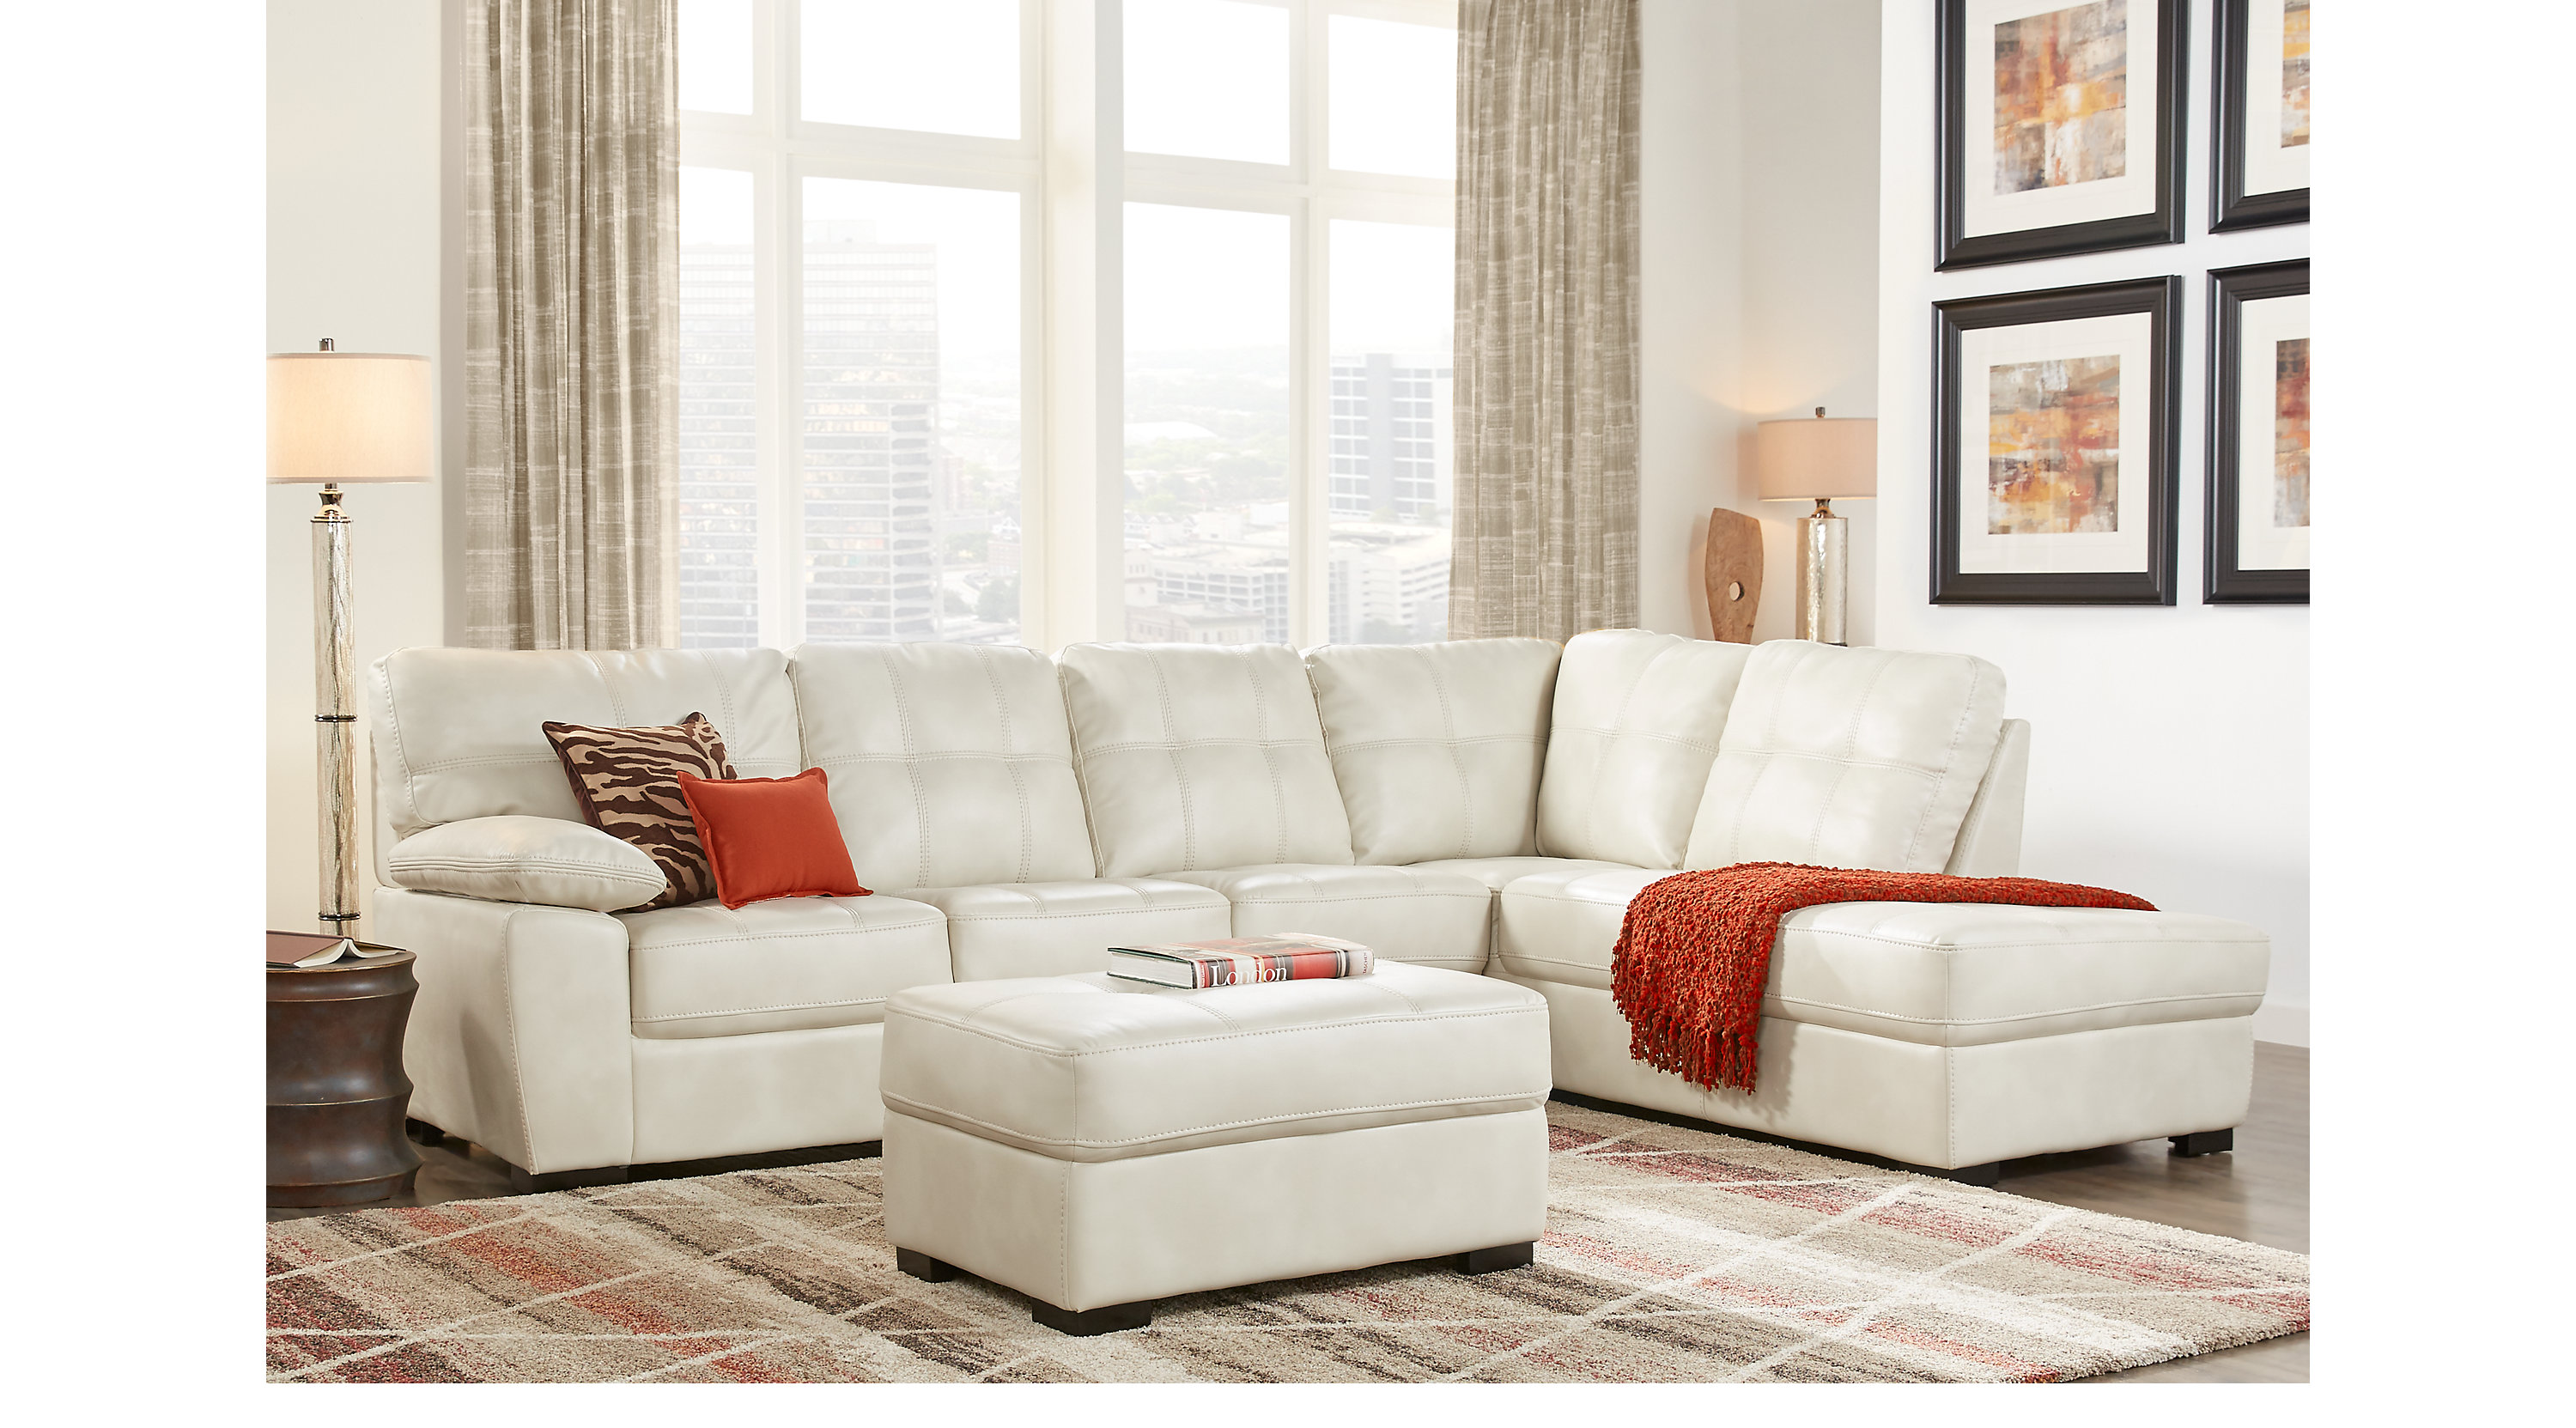 $1,075.00 - Bexley Square Cream 3 Pc Sectional Living Room ...